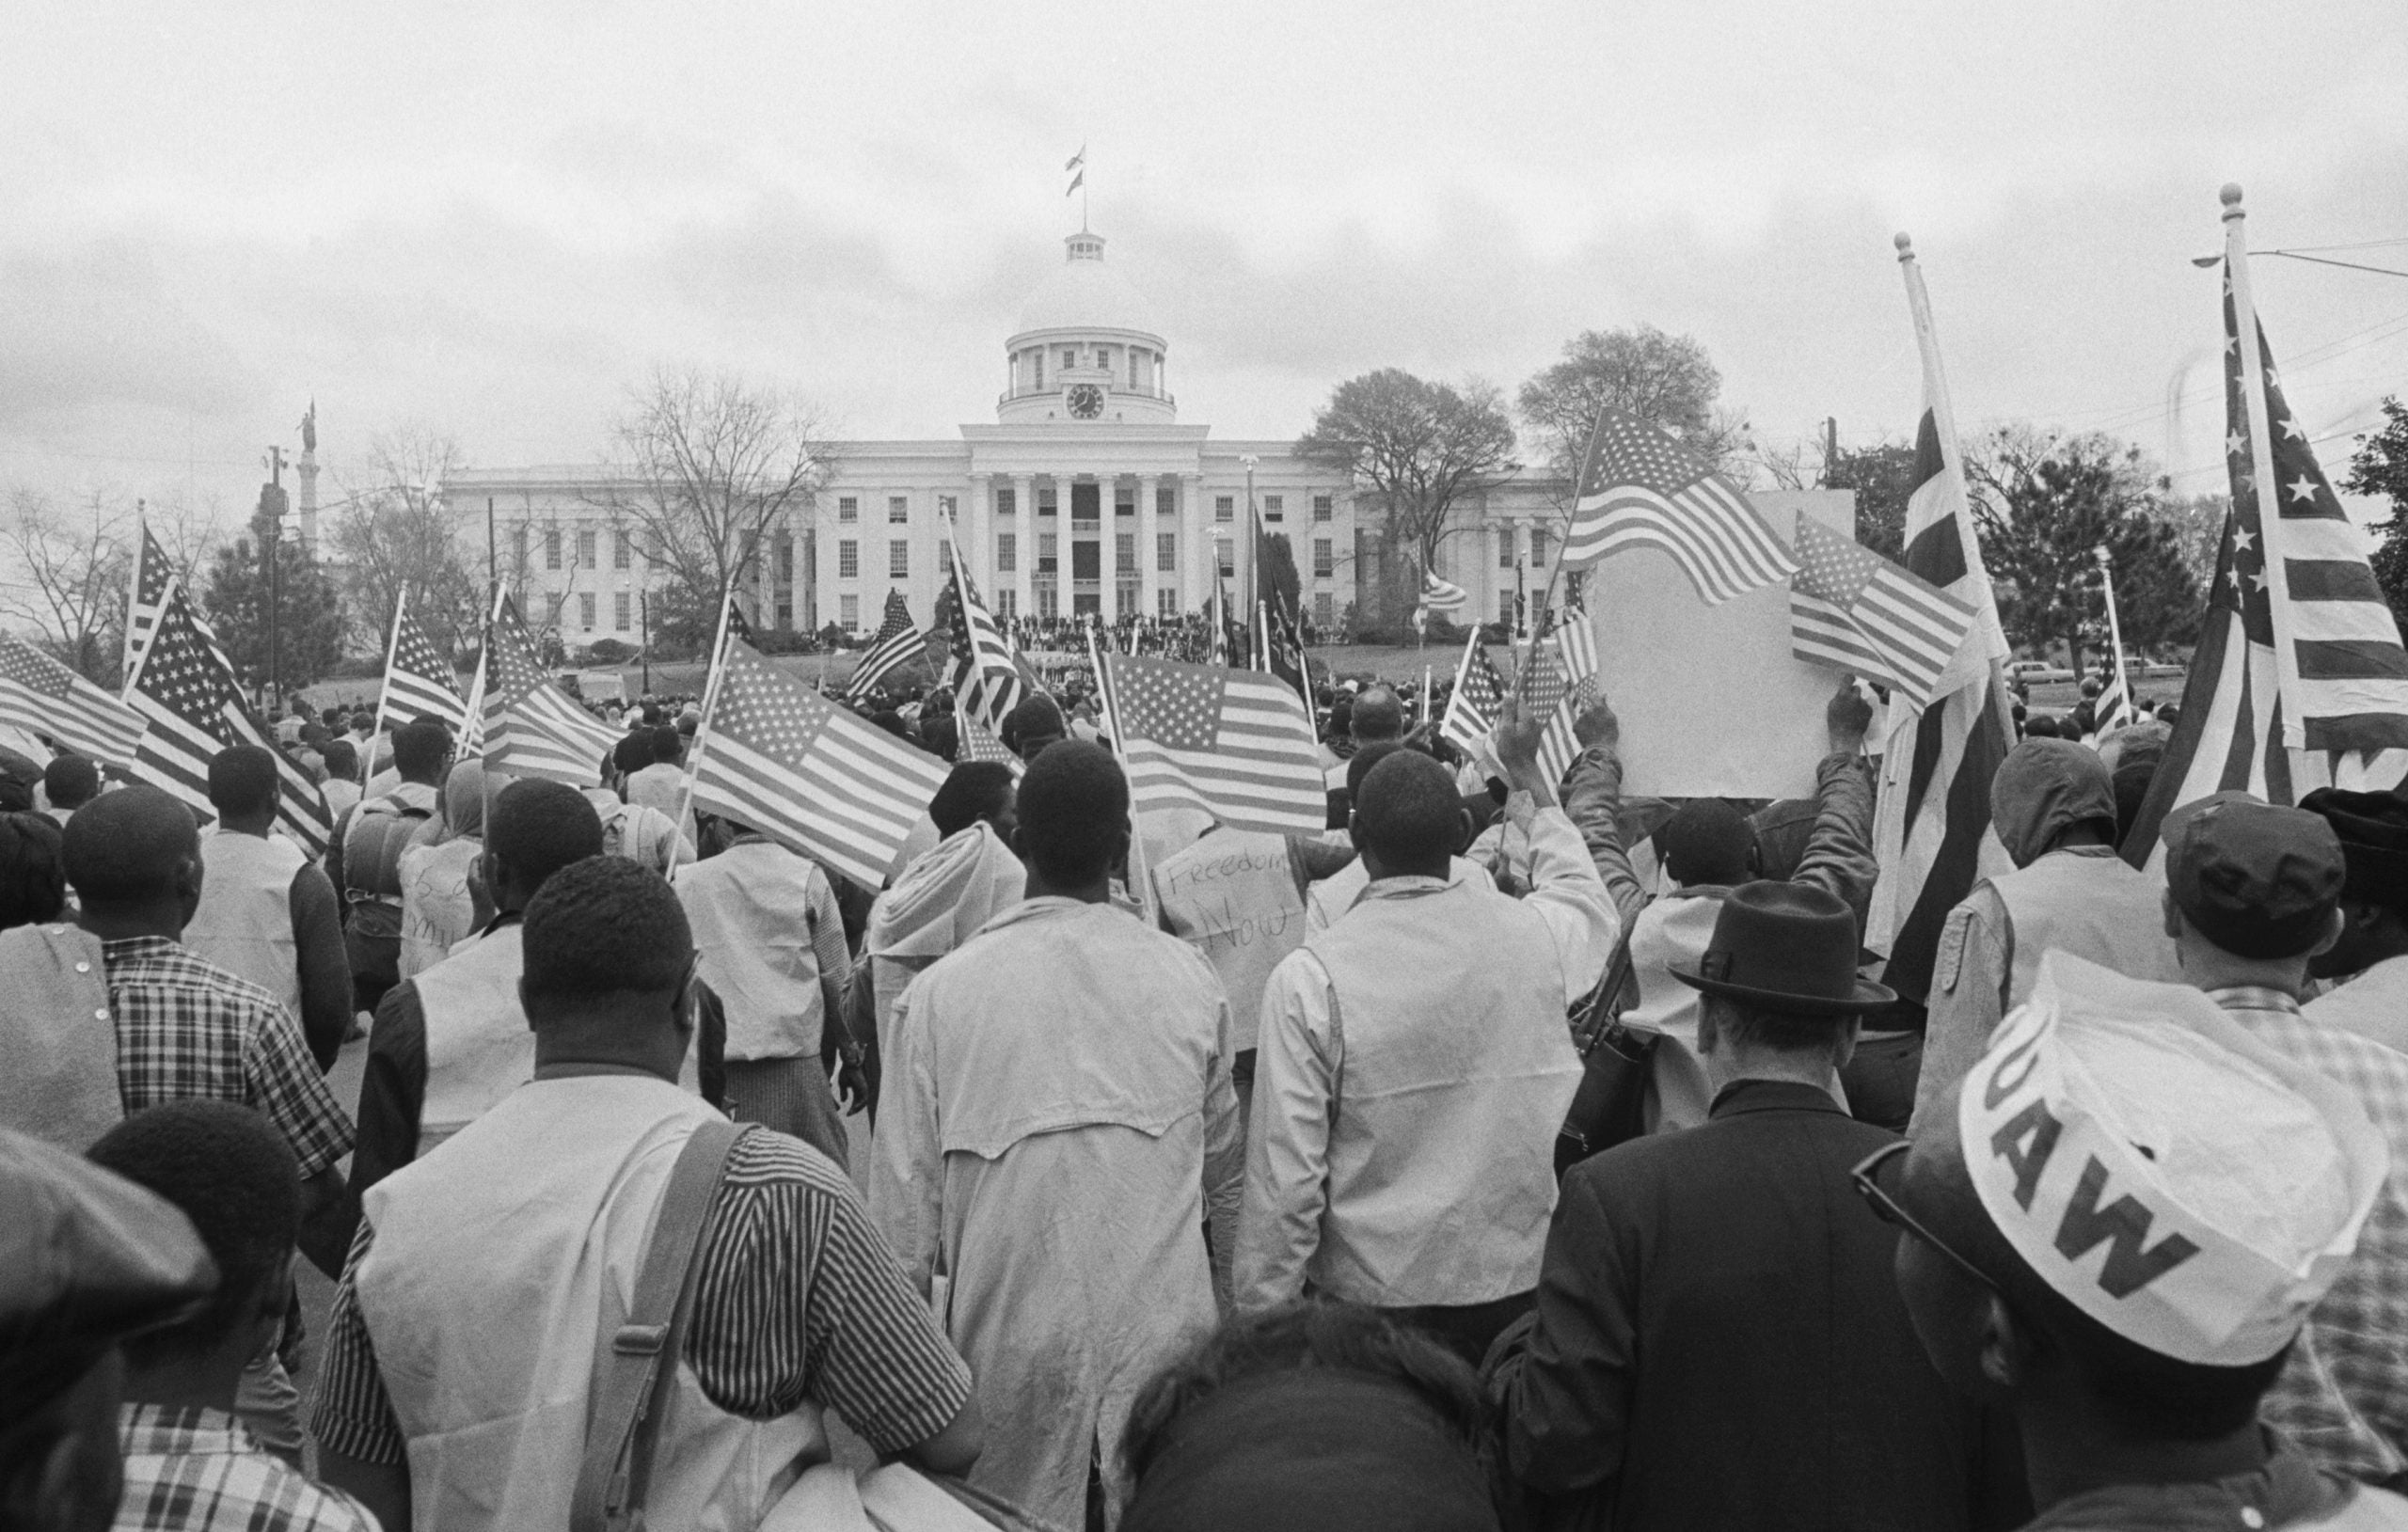 Civil rights marchers arrive at the Alabama State Capitol in Montgomery, Alabama